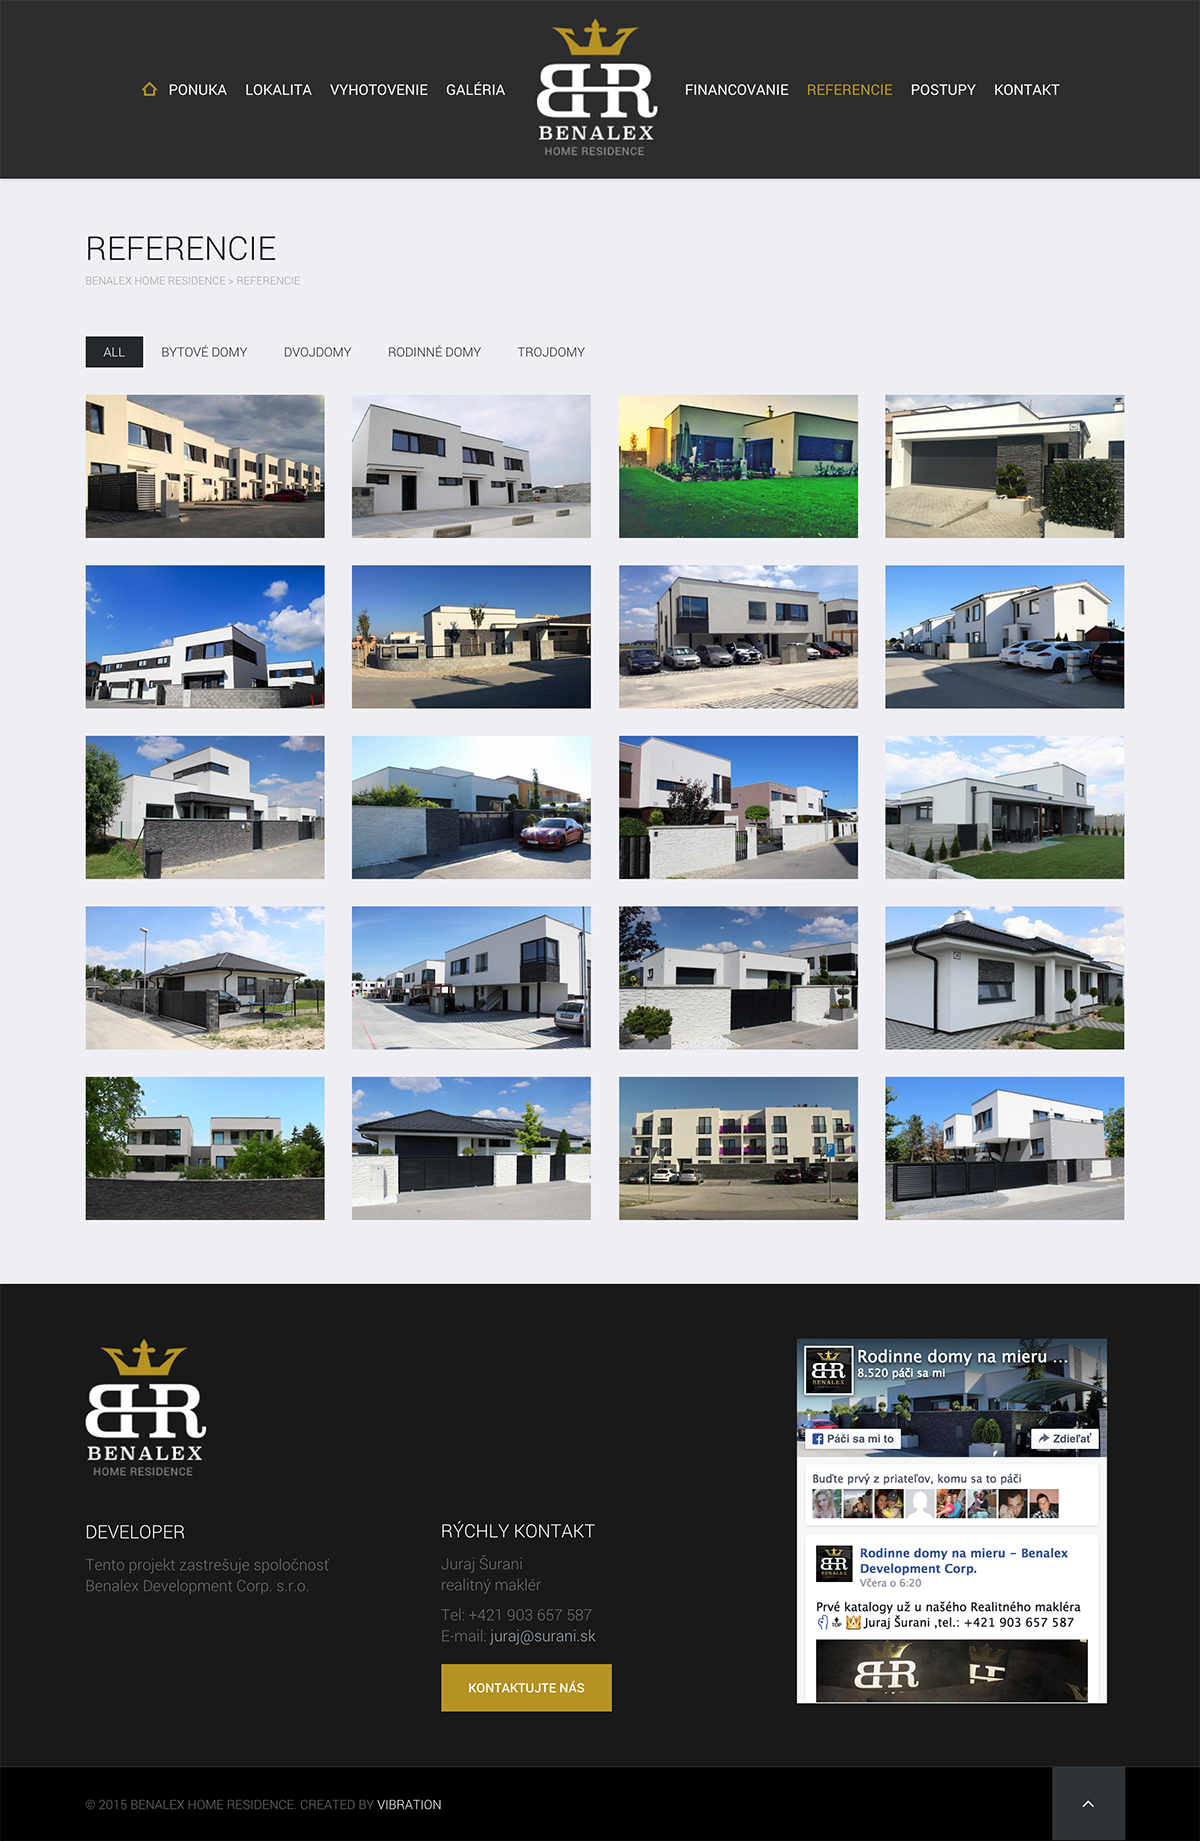 Referencie Benalex Home Residence